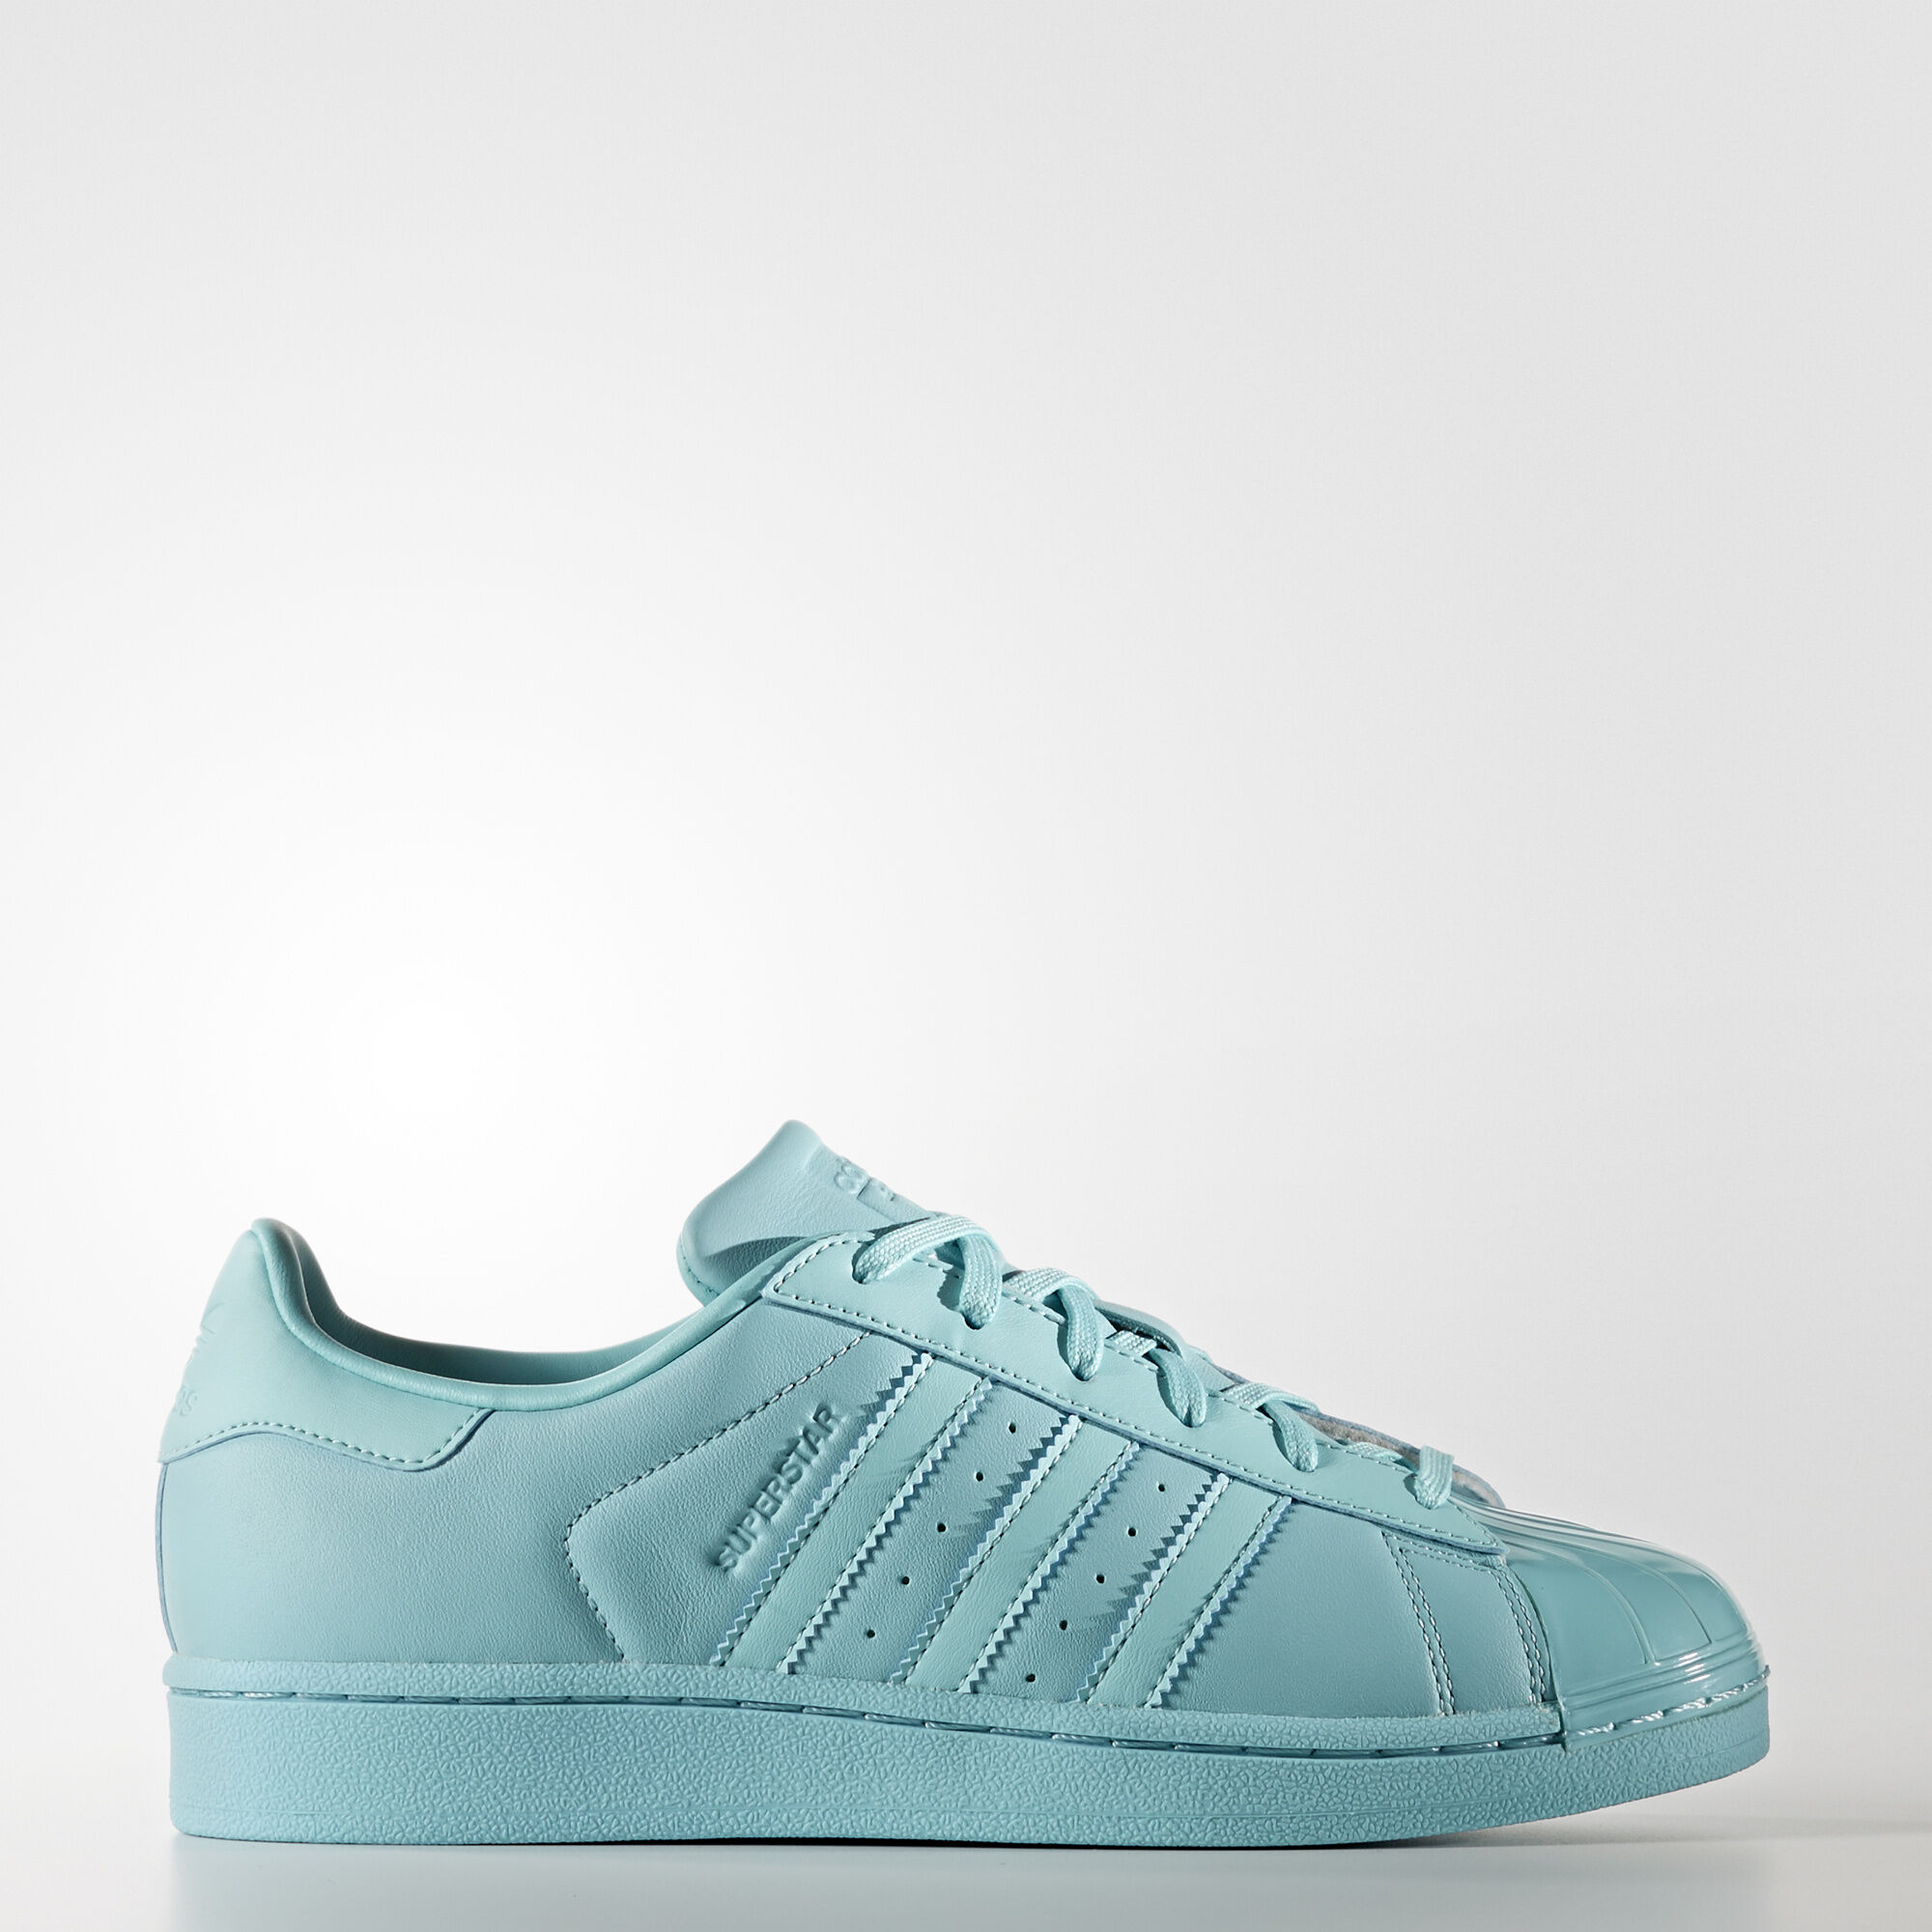 Adidas Shoes Easy